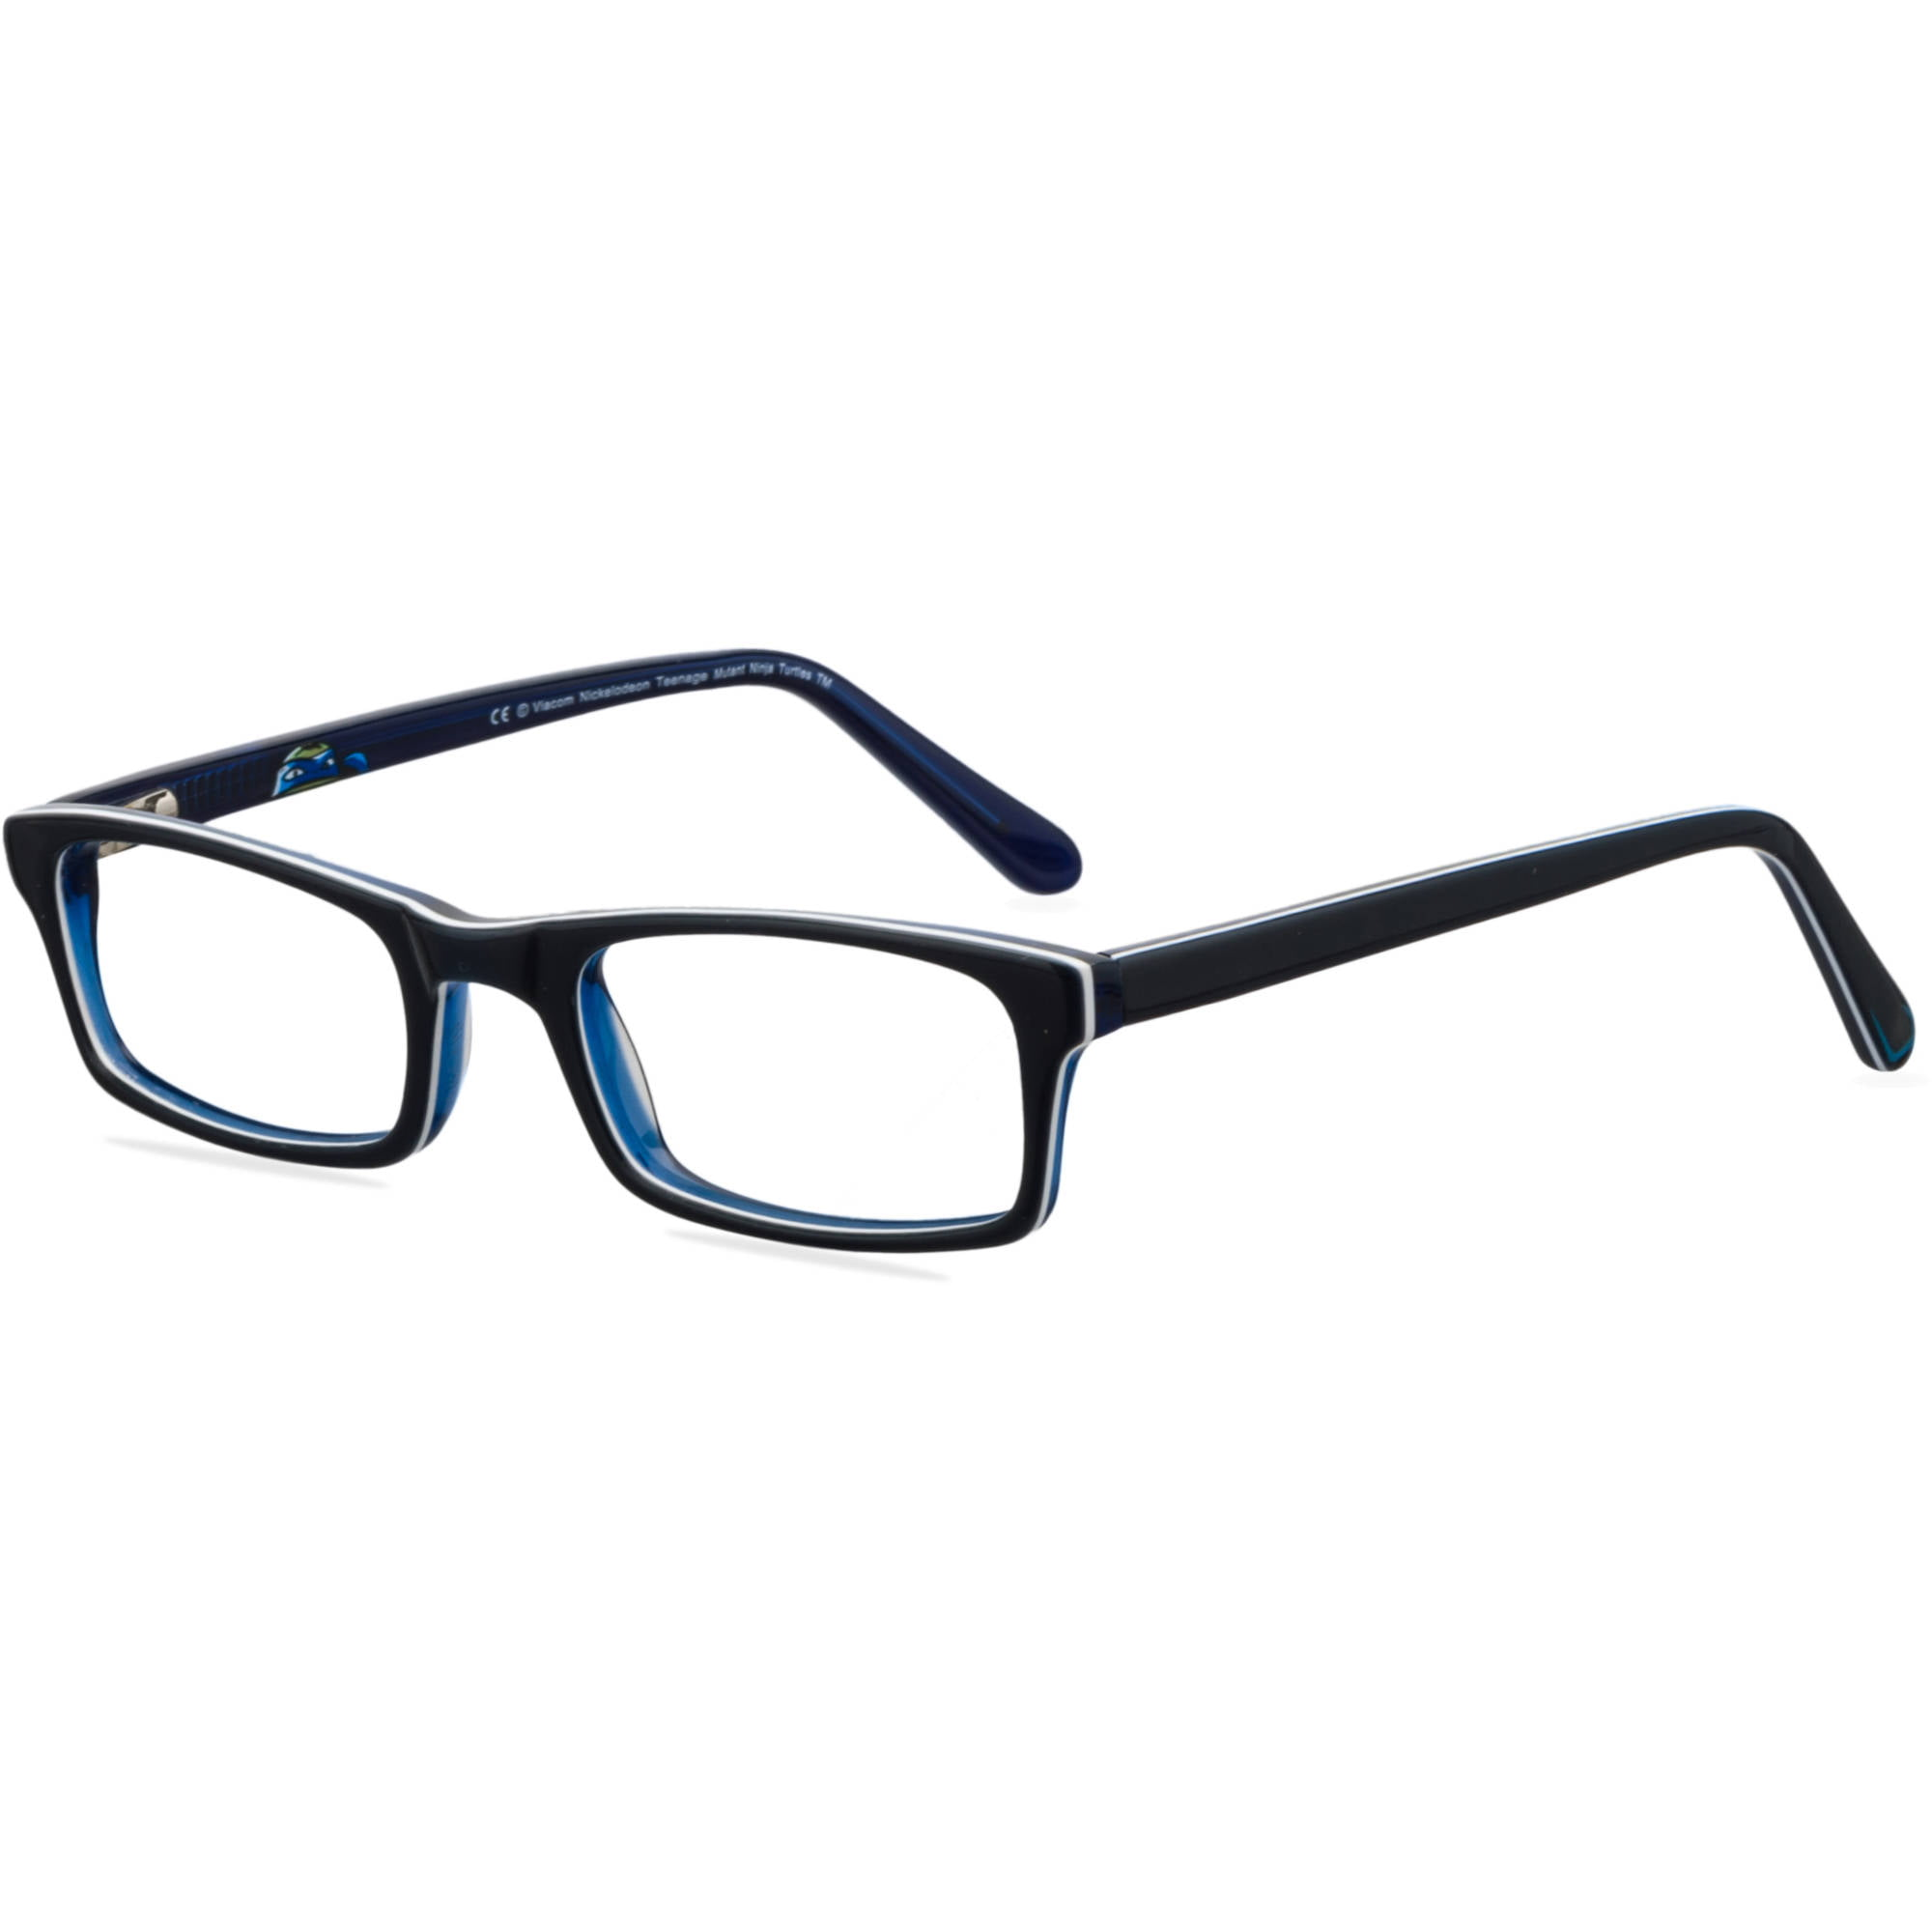 teenage mutant ninja turtles boys prescription glasses tm04 navy